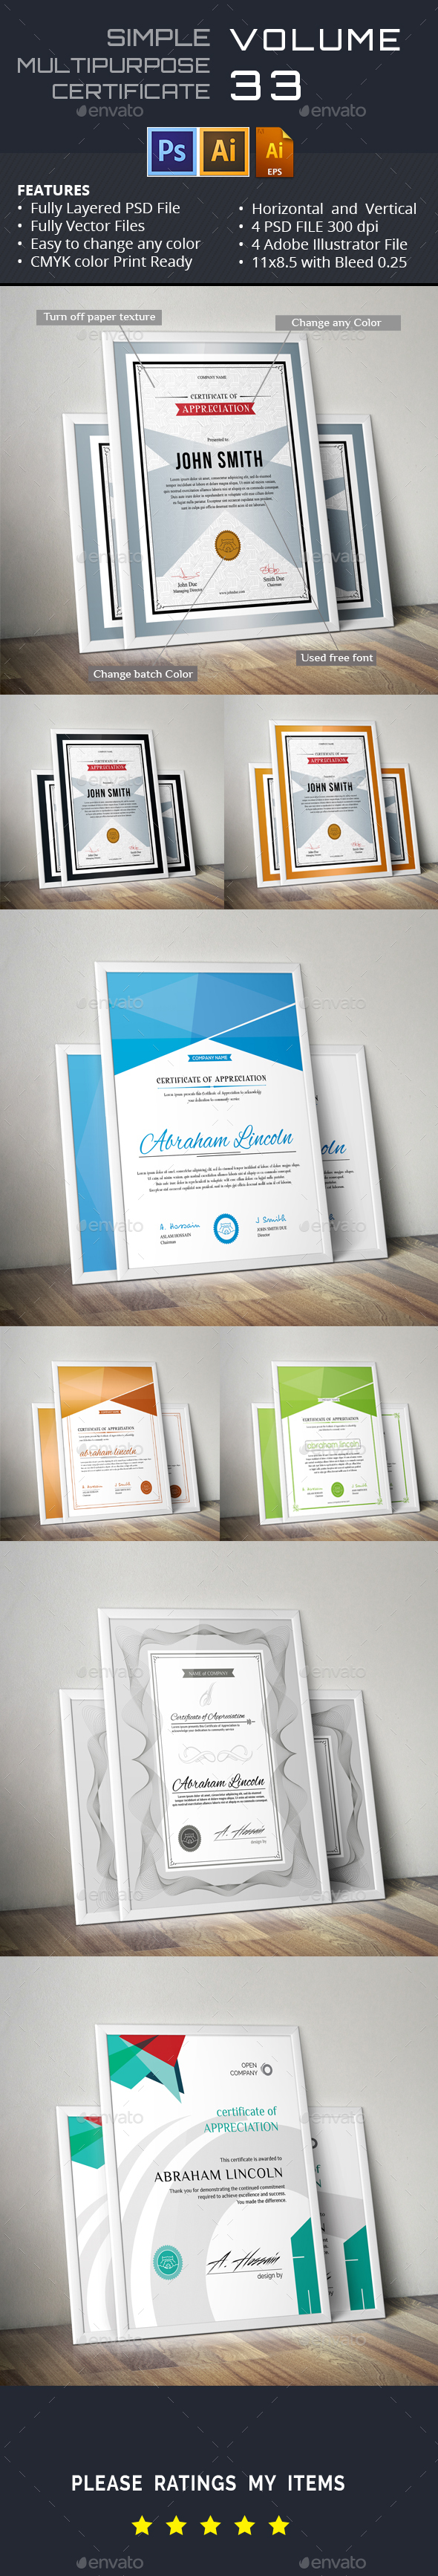 Simple Certicates GD033 - Certificates Stationery